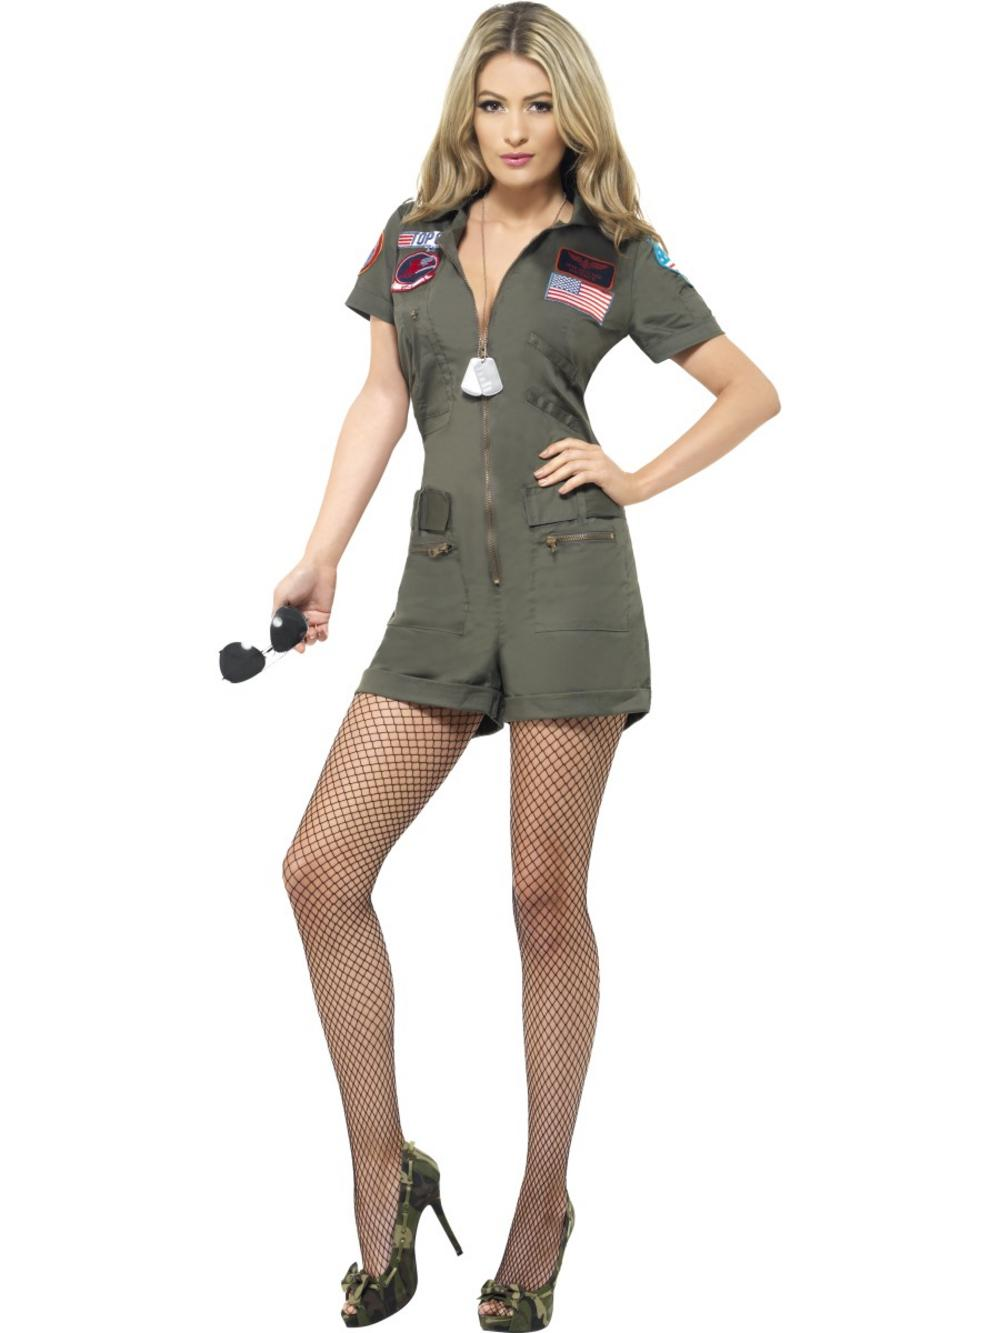 Top Gun Aviator Playsuit Costume All Ladies Costumes Mega Fancy Dress